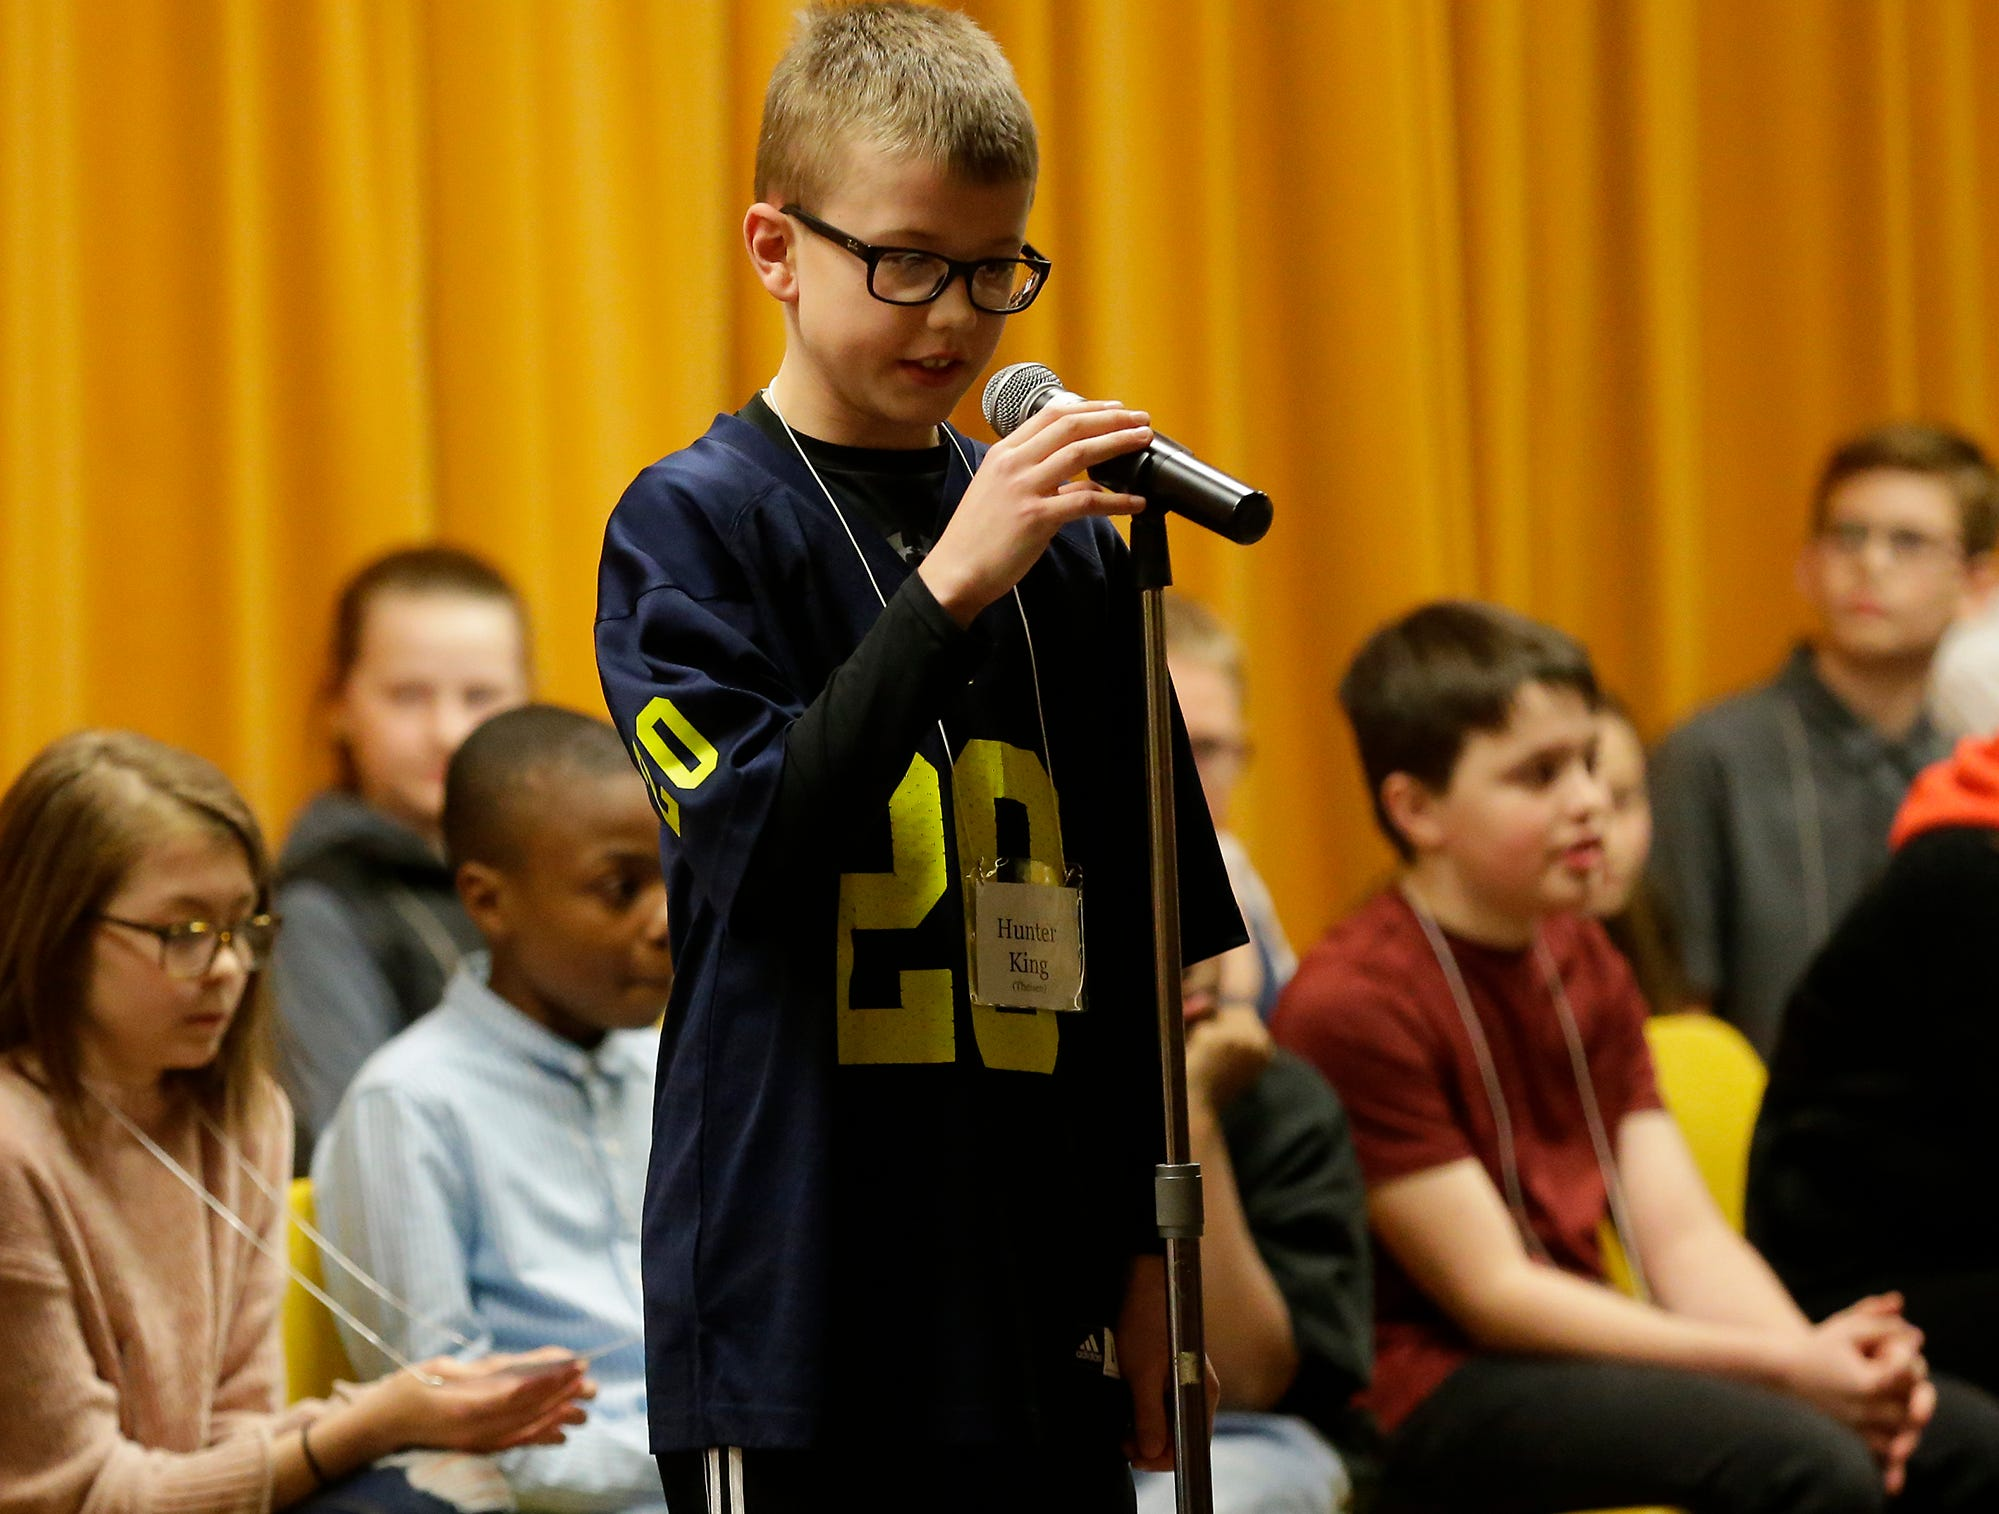 Hunter King of Theisen Middle School competes in the Fond du Lac citywide spelling bee Tuesday, February 26, 2019 at These Middle School in Fond du Lac, Wis. Doug Raflik/USA TODAY NETWORK-Wisconsin